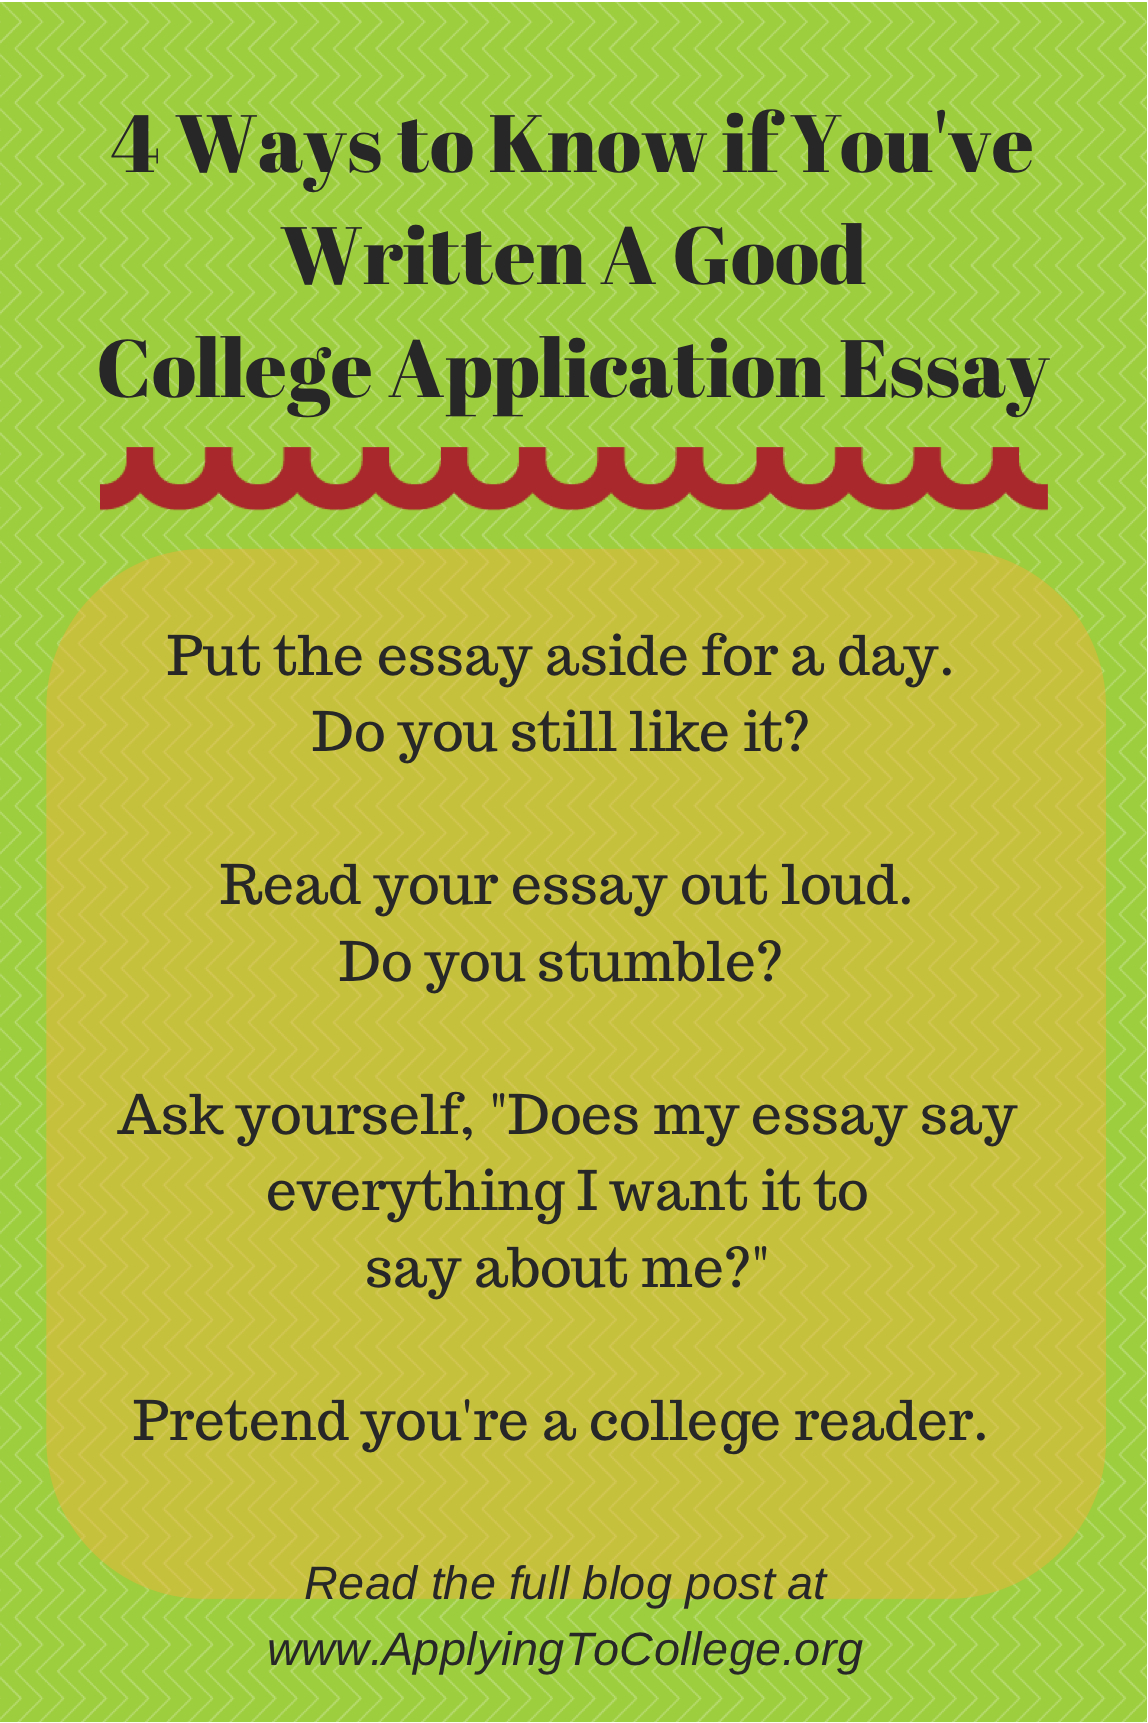 What should I write about in my college application essay?